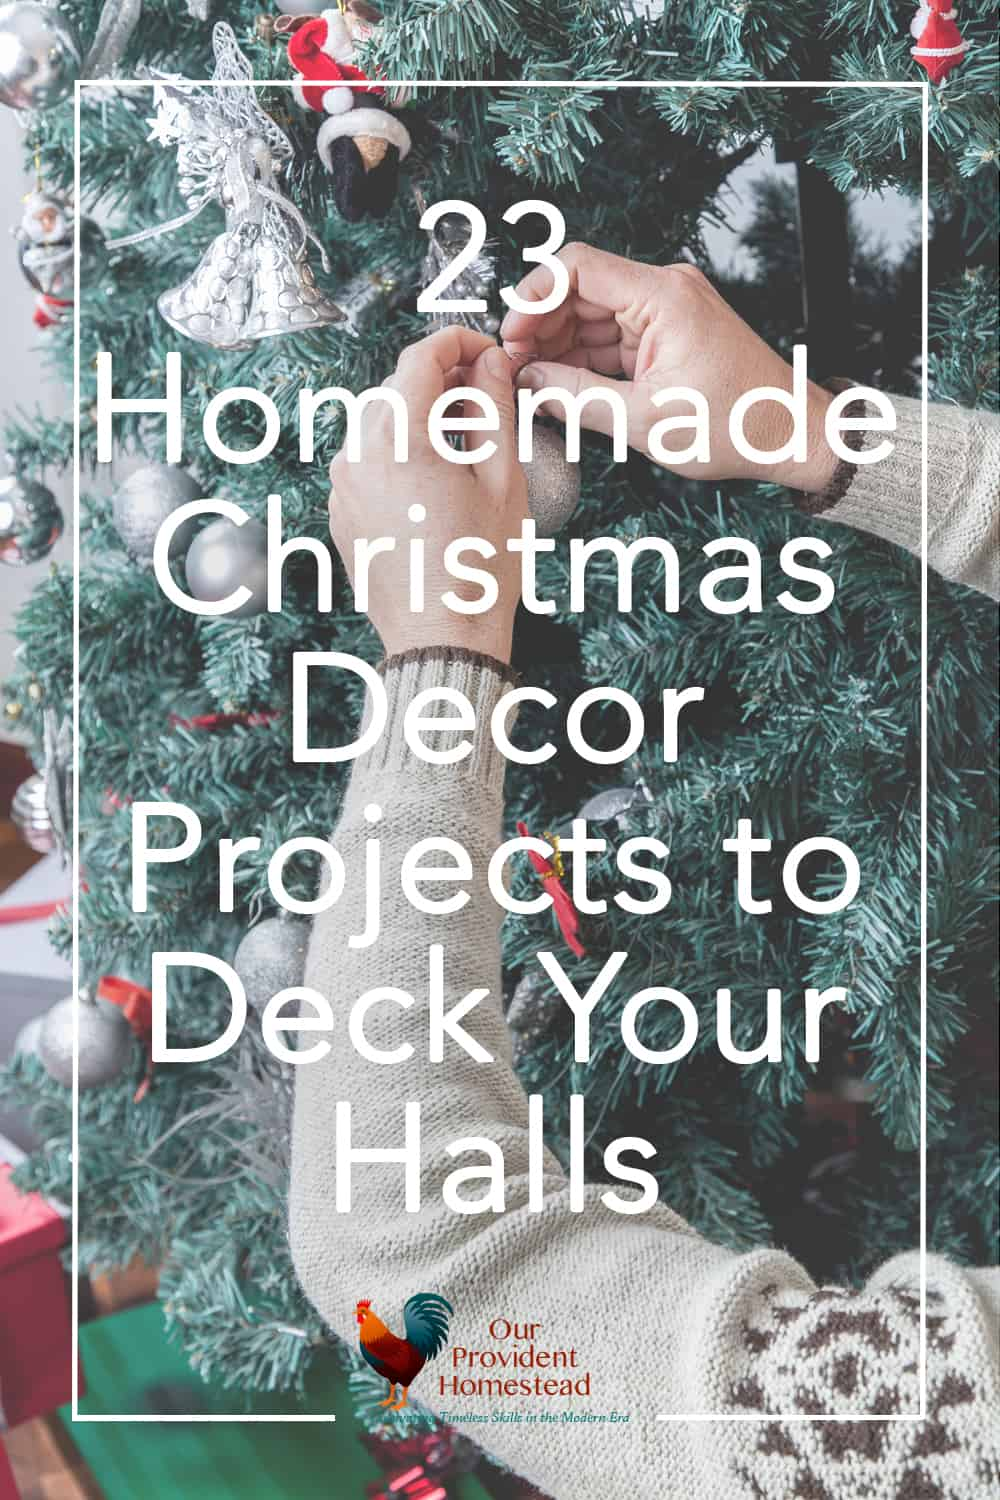 Do you want to give your home a new look for the holidays this year? Click here for 23 rustic DIY Christmas decor ideas to deck your halls, including your table, mantel and tree. #christmas #christmashomedecor #christmascraft #rusticchristmas